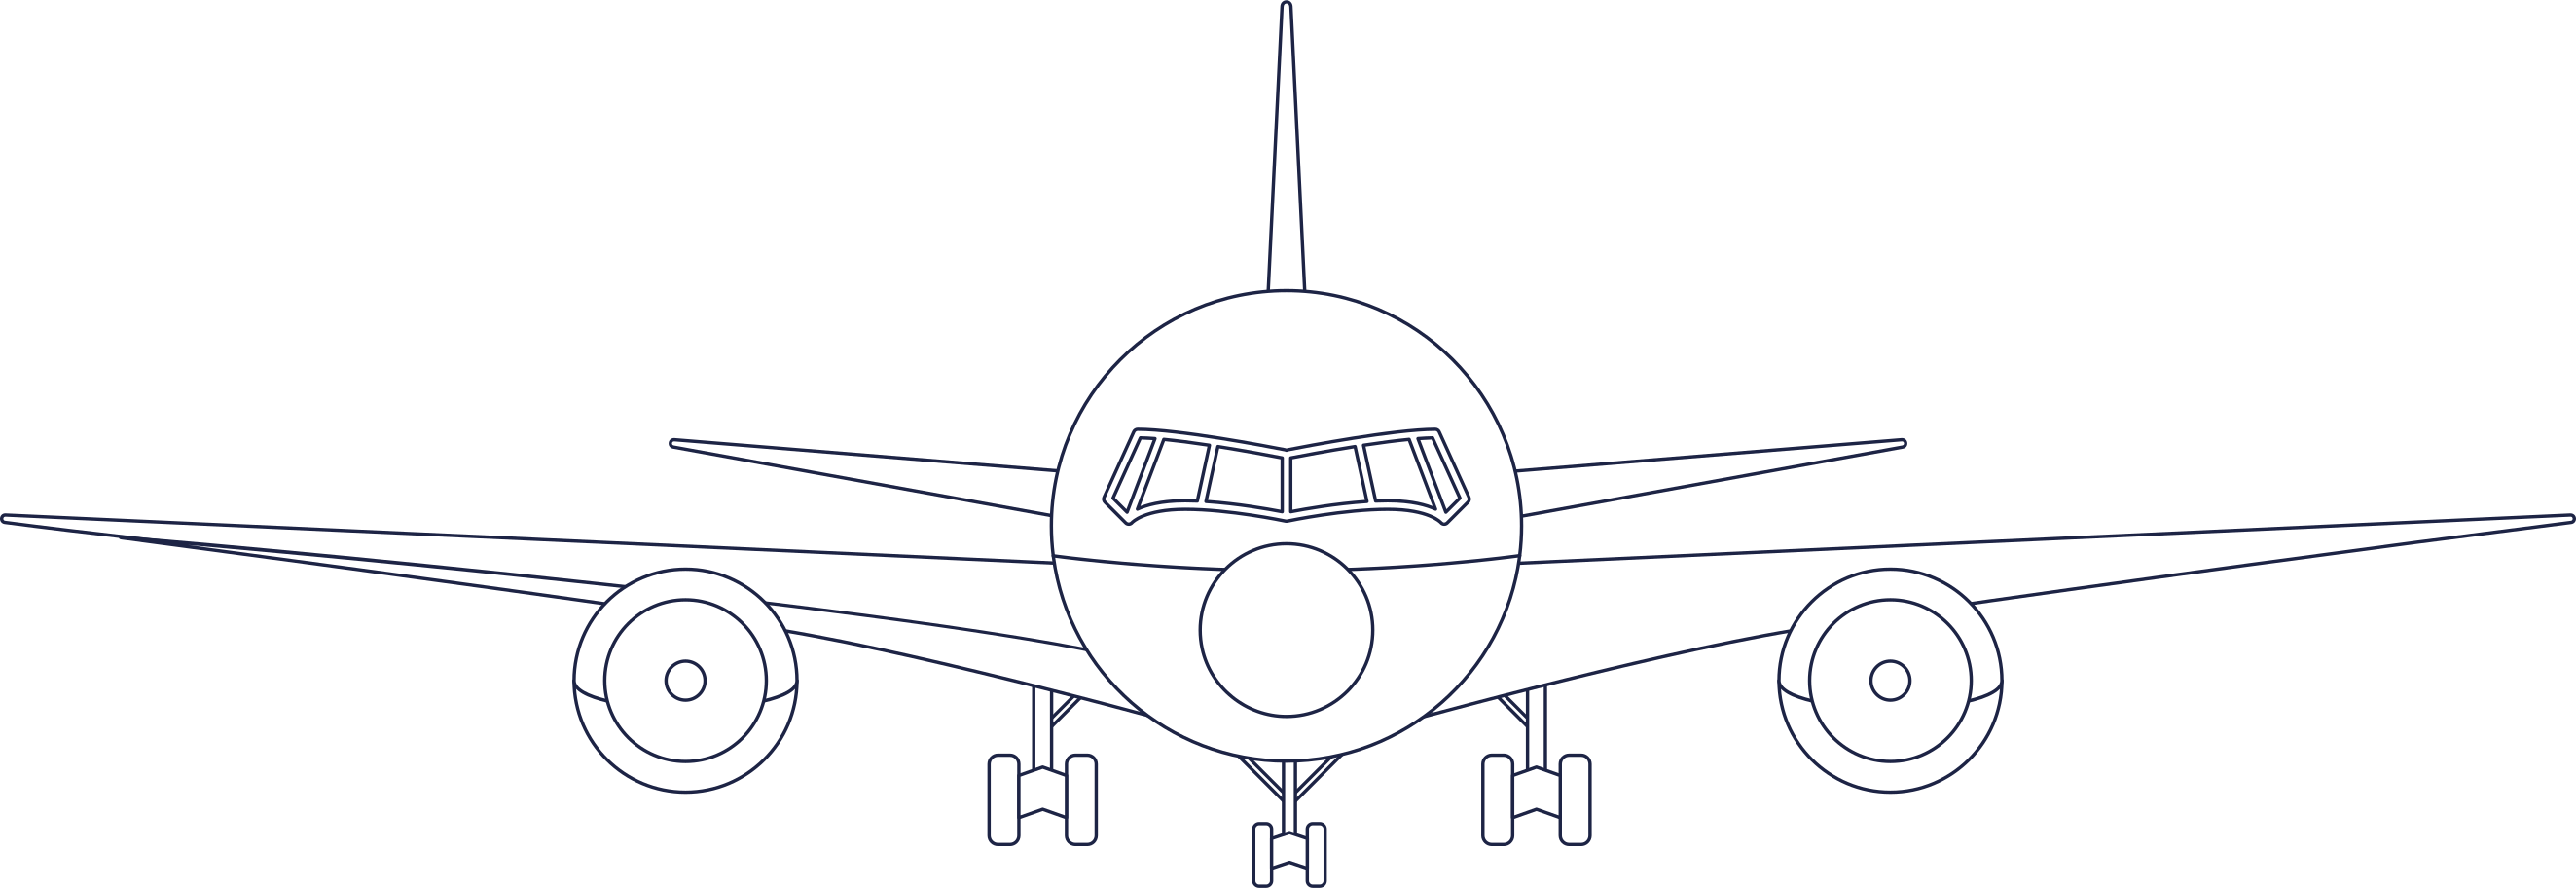 style plane 1 line images in PNG and SVG   Icons8 Illustrations